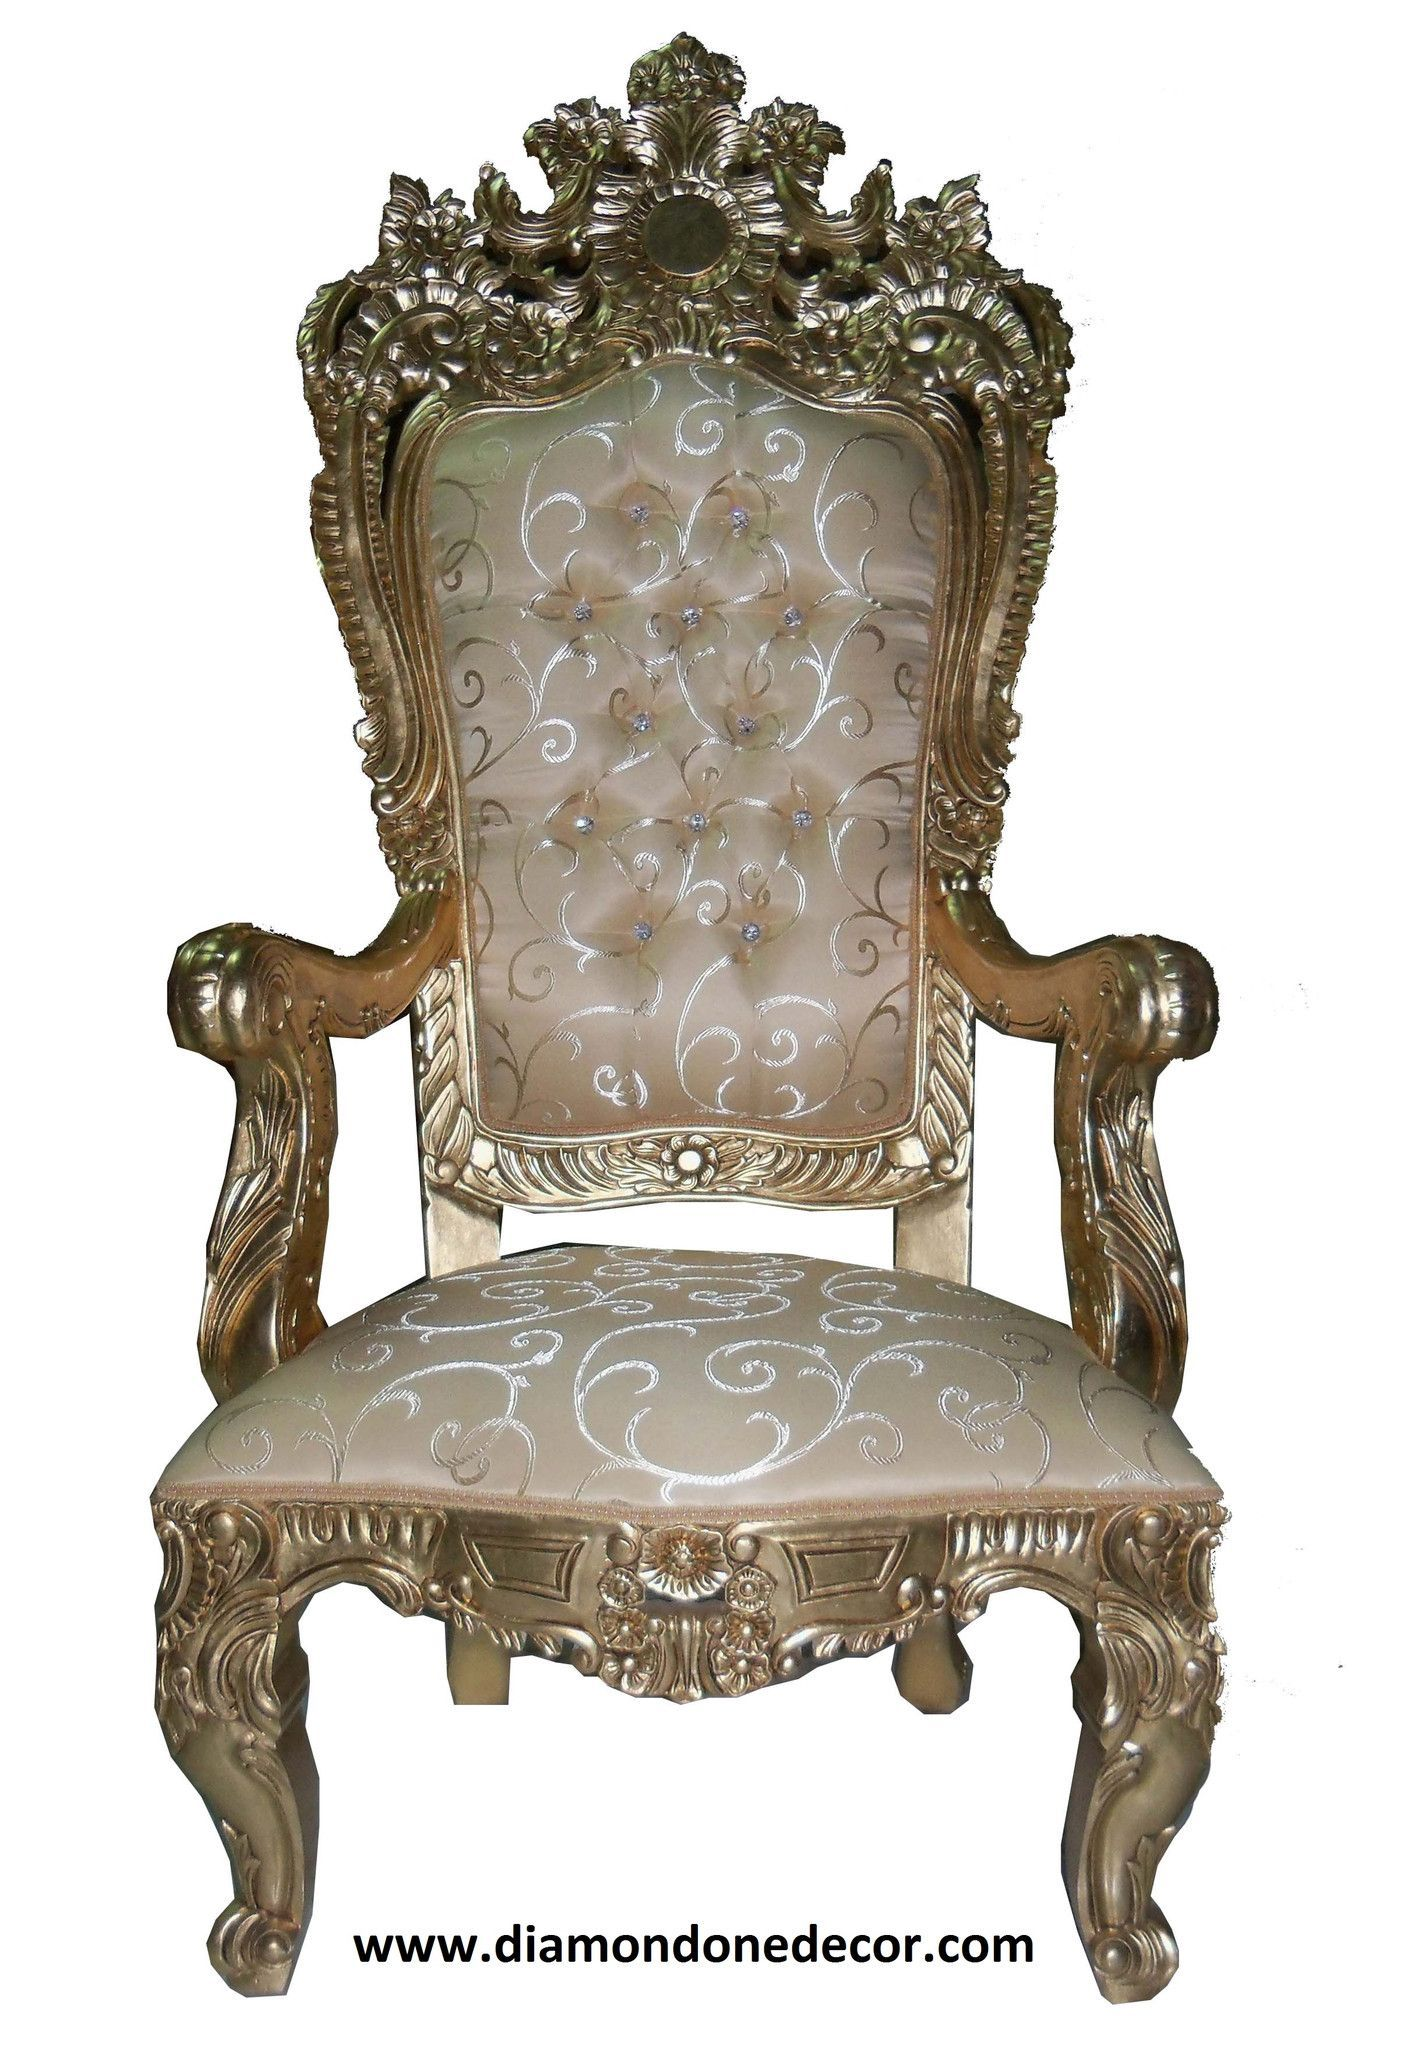 Exquisite Mahogany Hand Carved Louis Xvi Baroque French Reproduction Throne Chair With Gold Leaf Finish